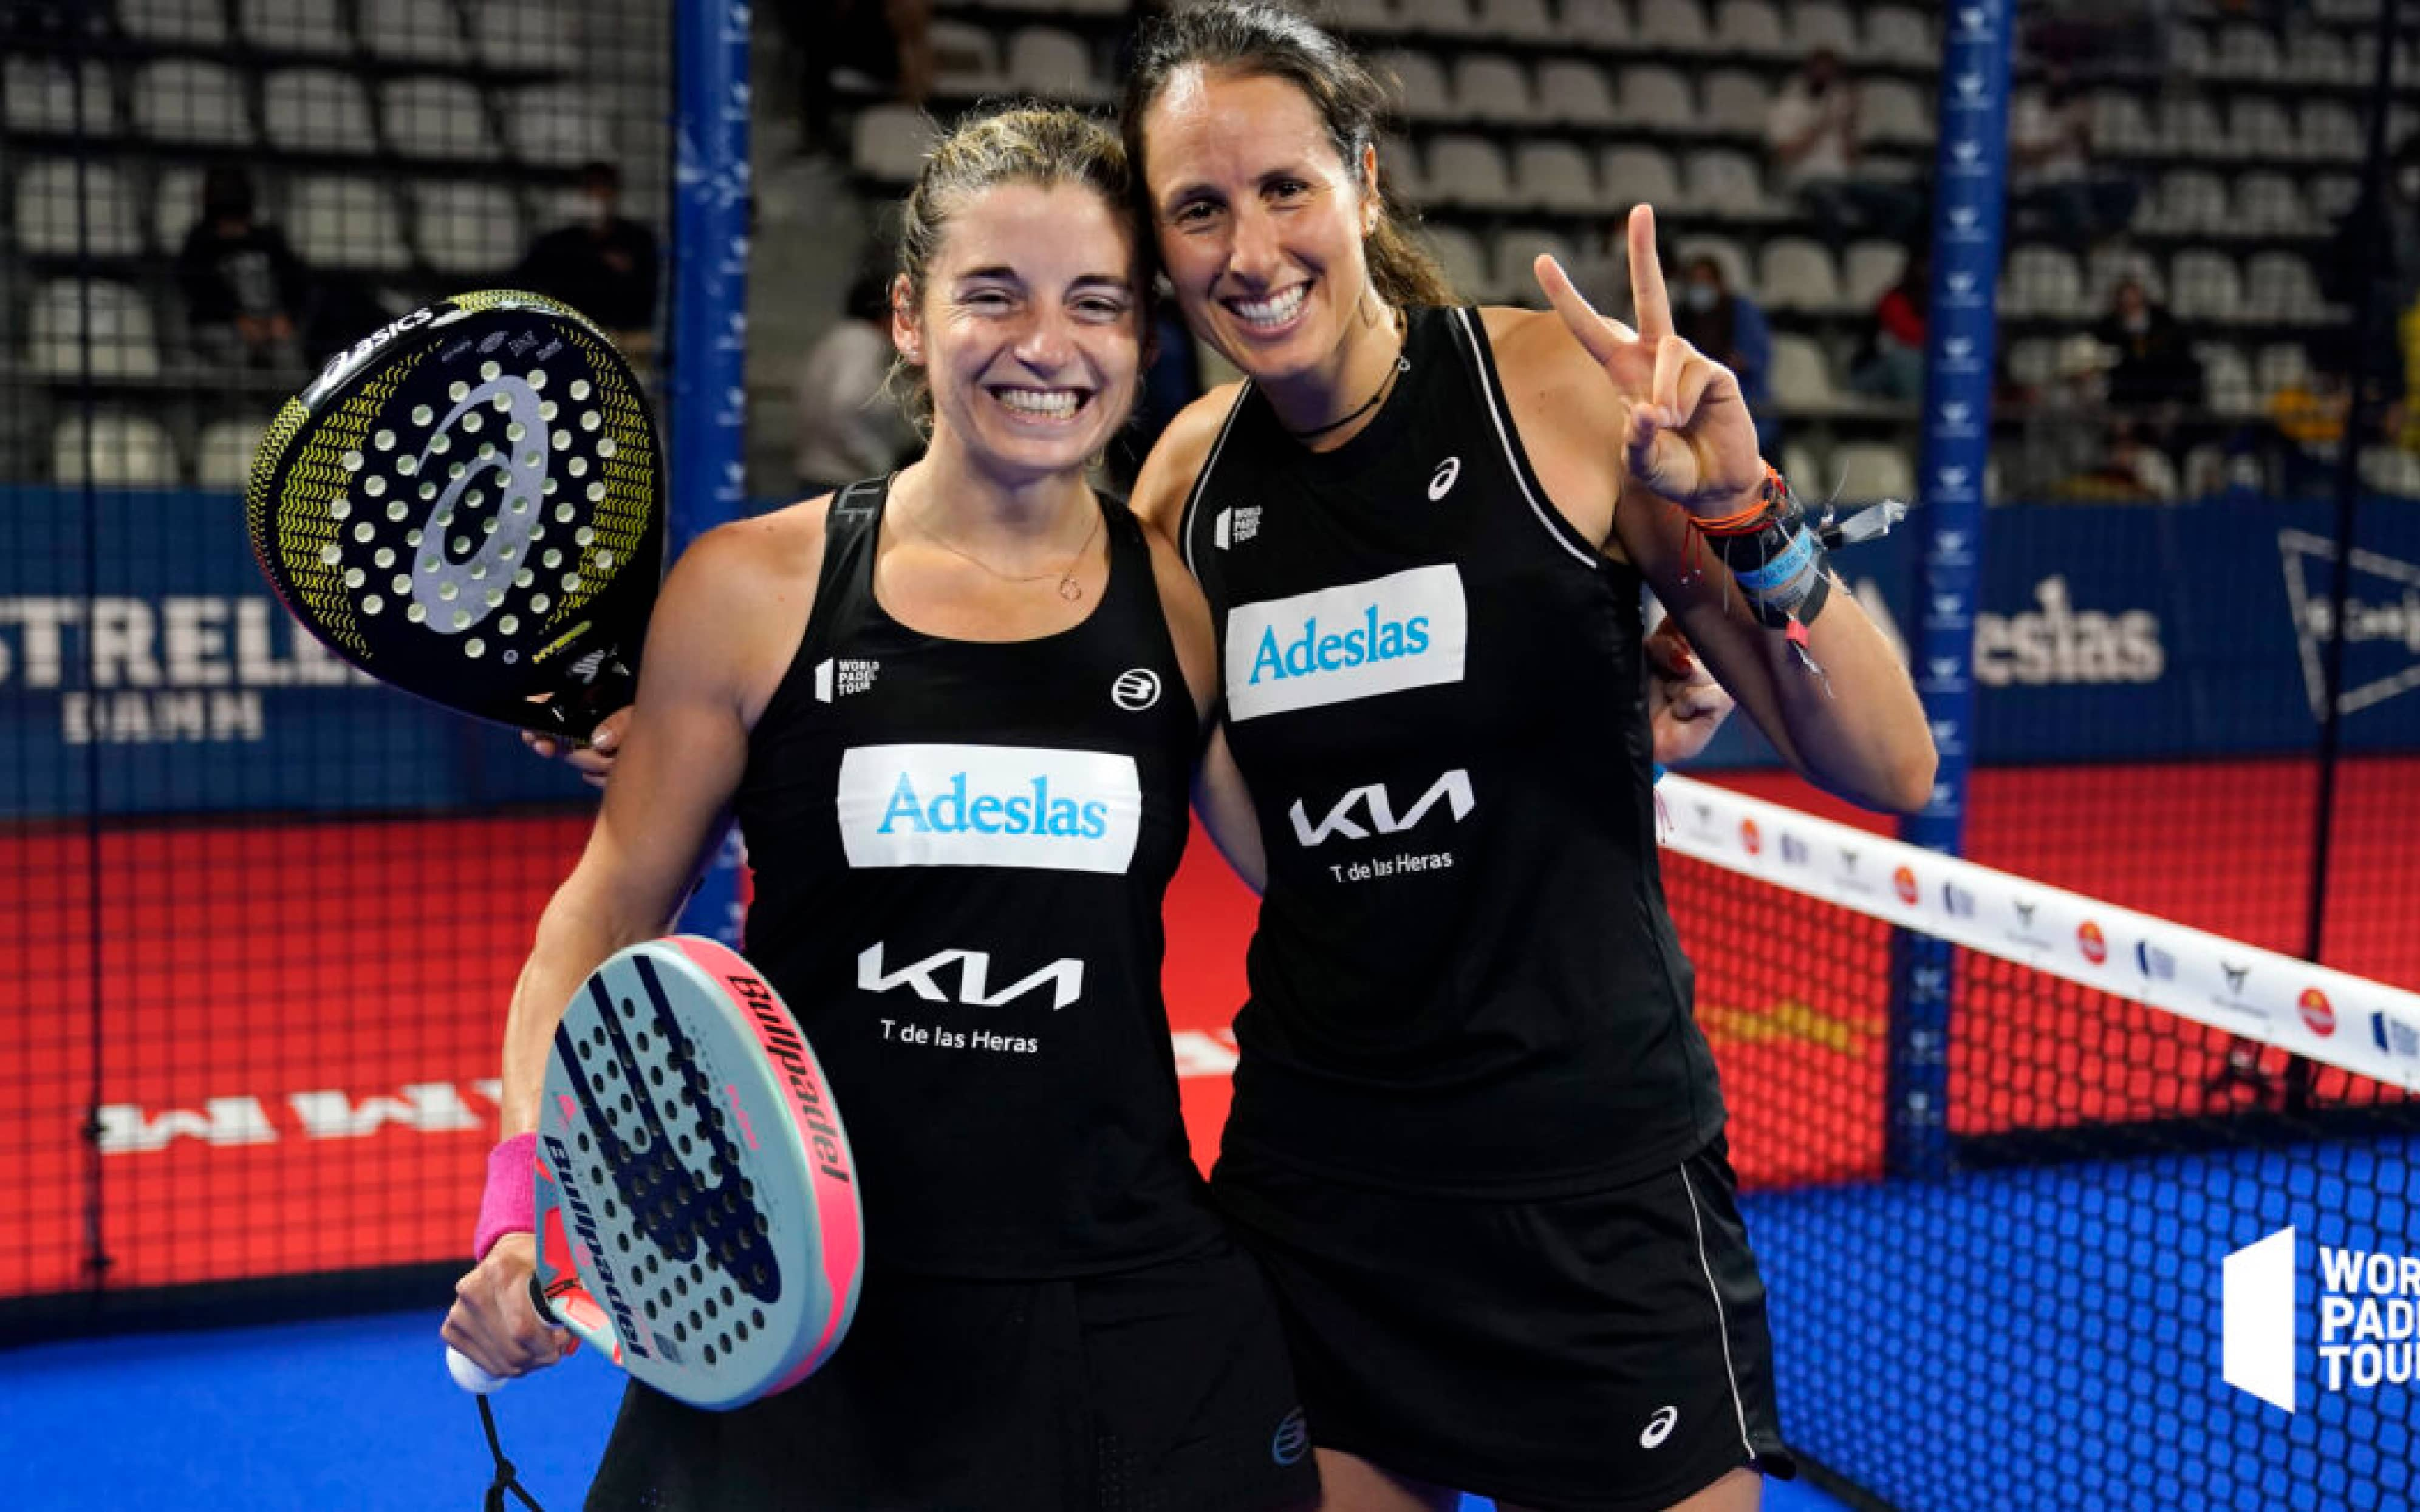 The best female couples of World Padel Tour 2021